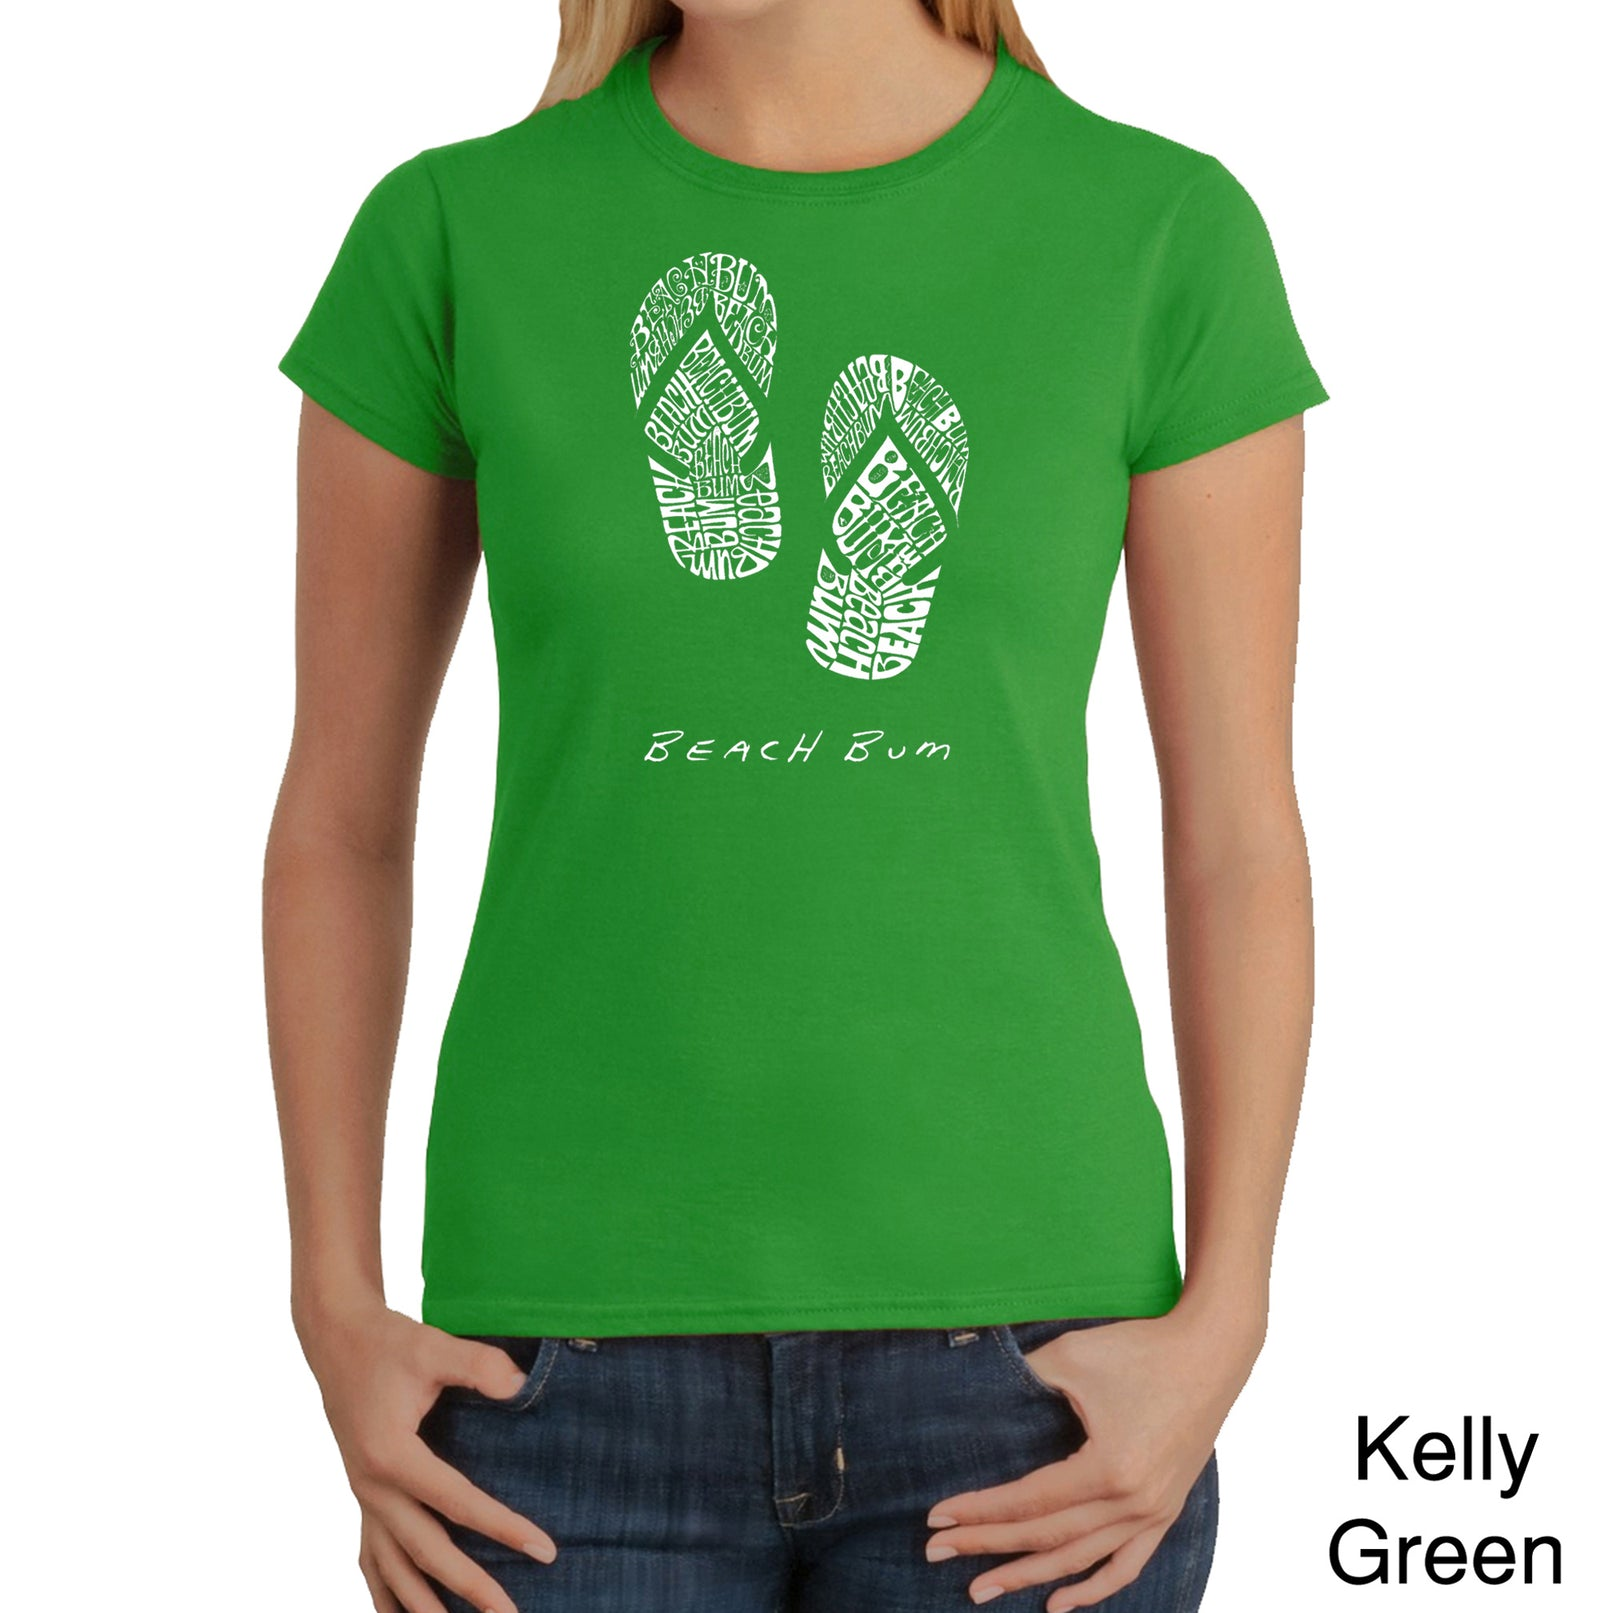 Women's T-Shirt - BEACH BUM